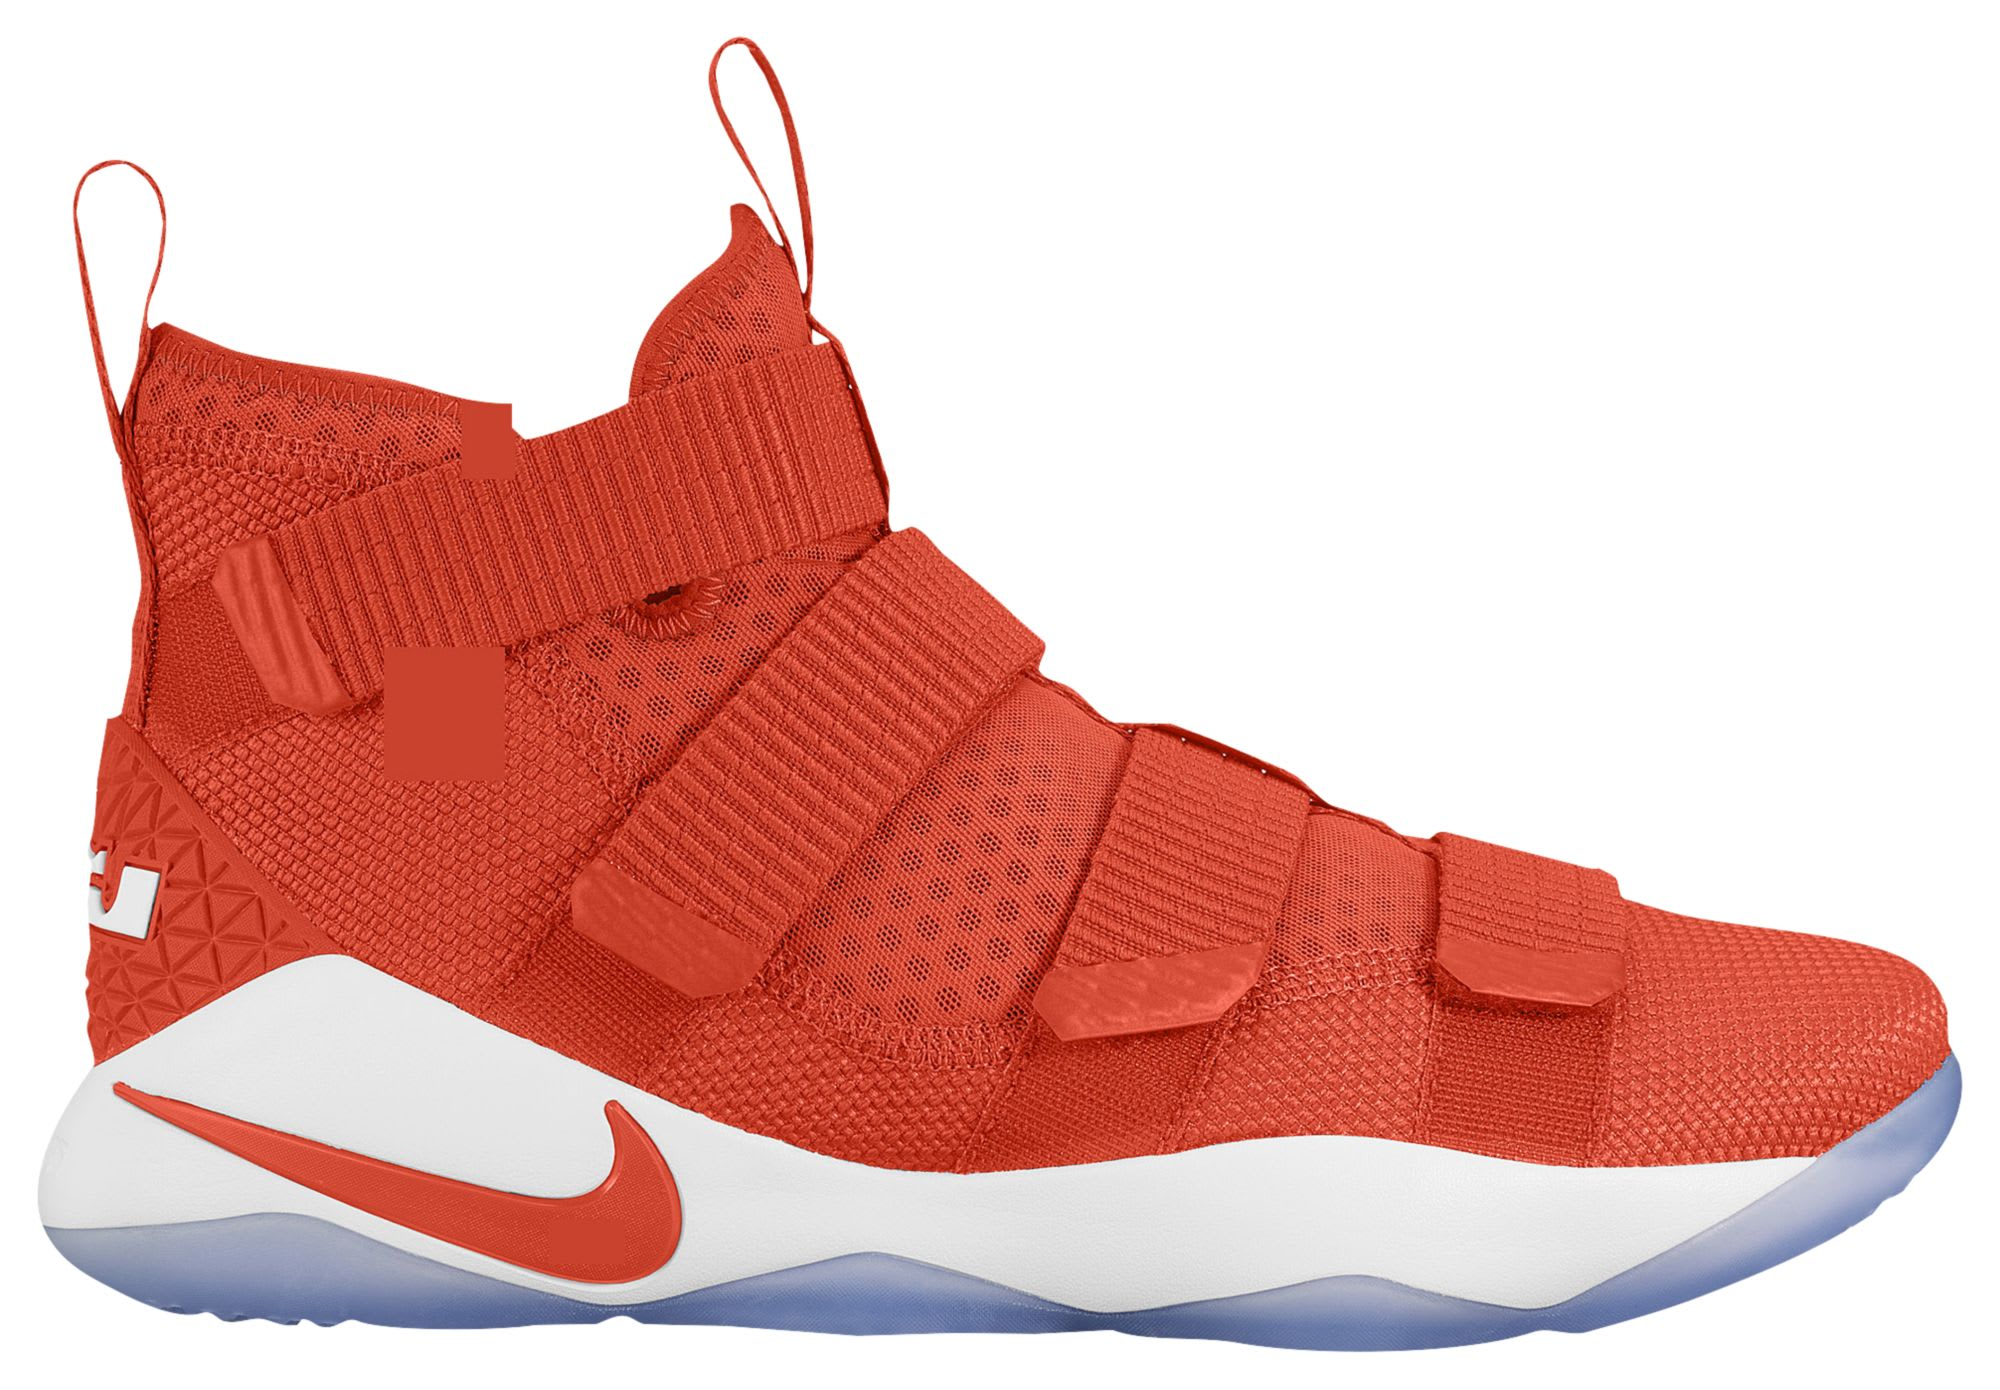 Nike LeBron Soldier 11 TB Orange